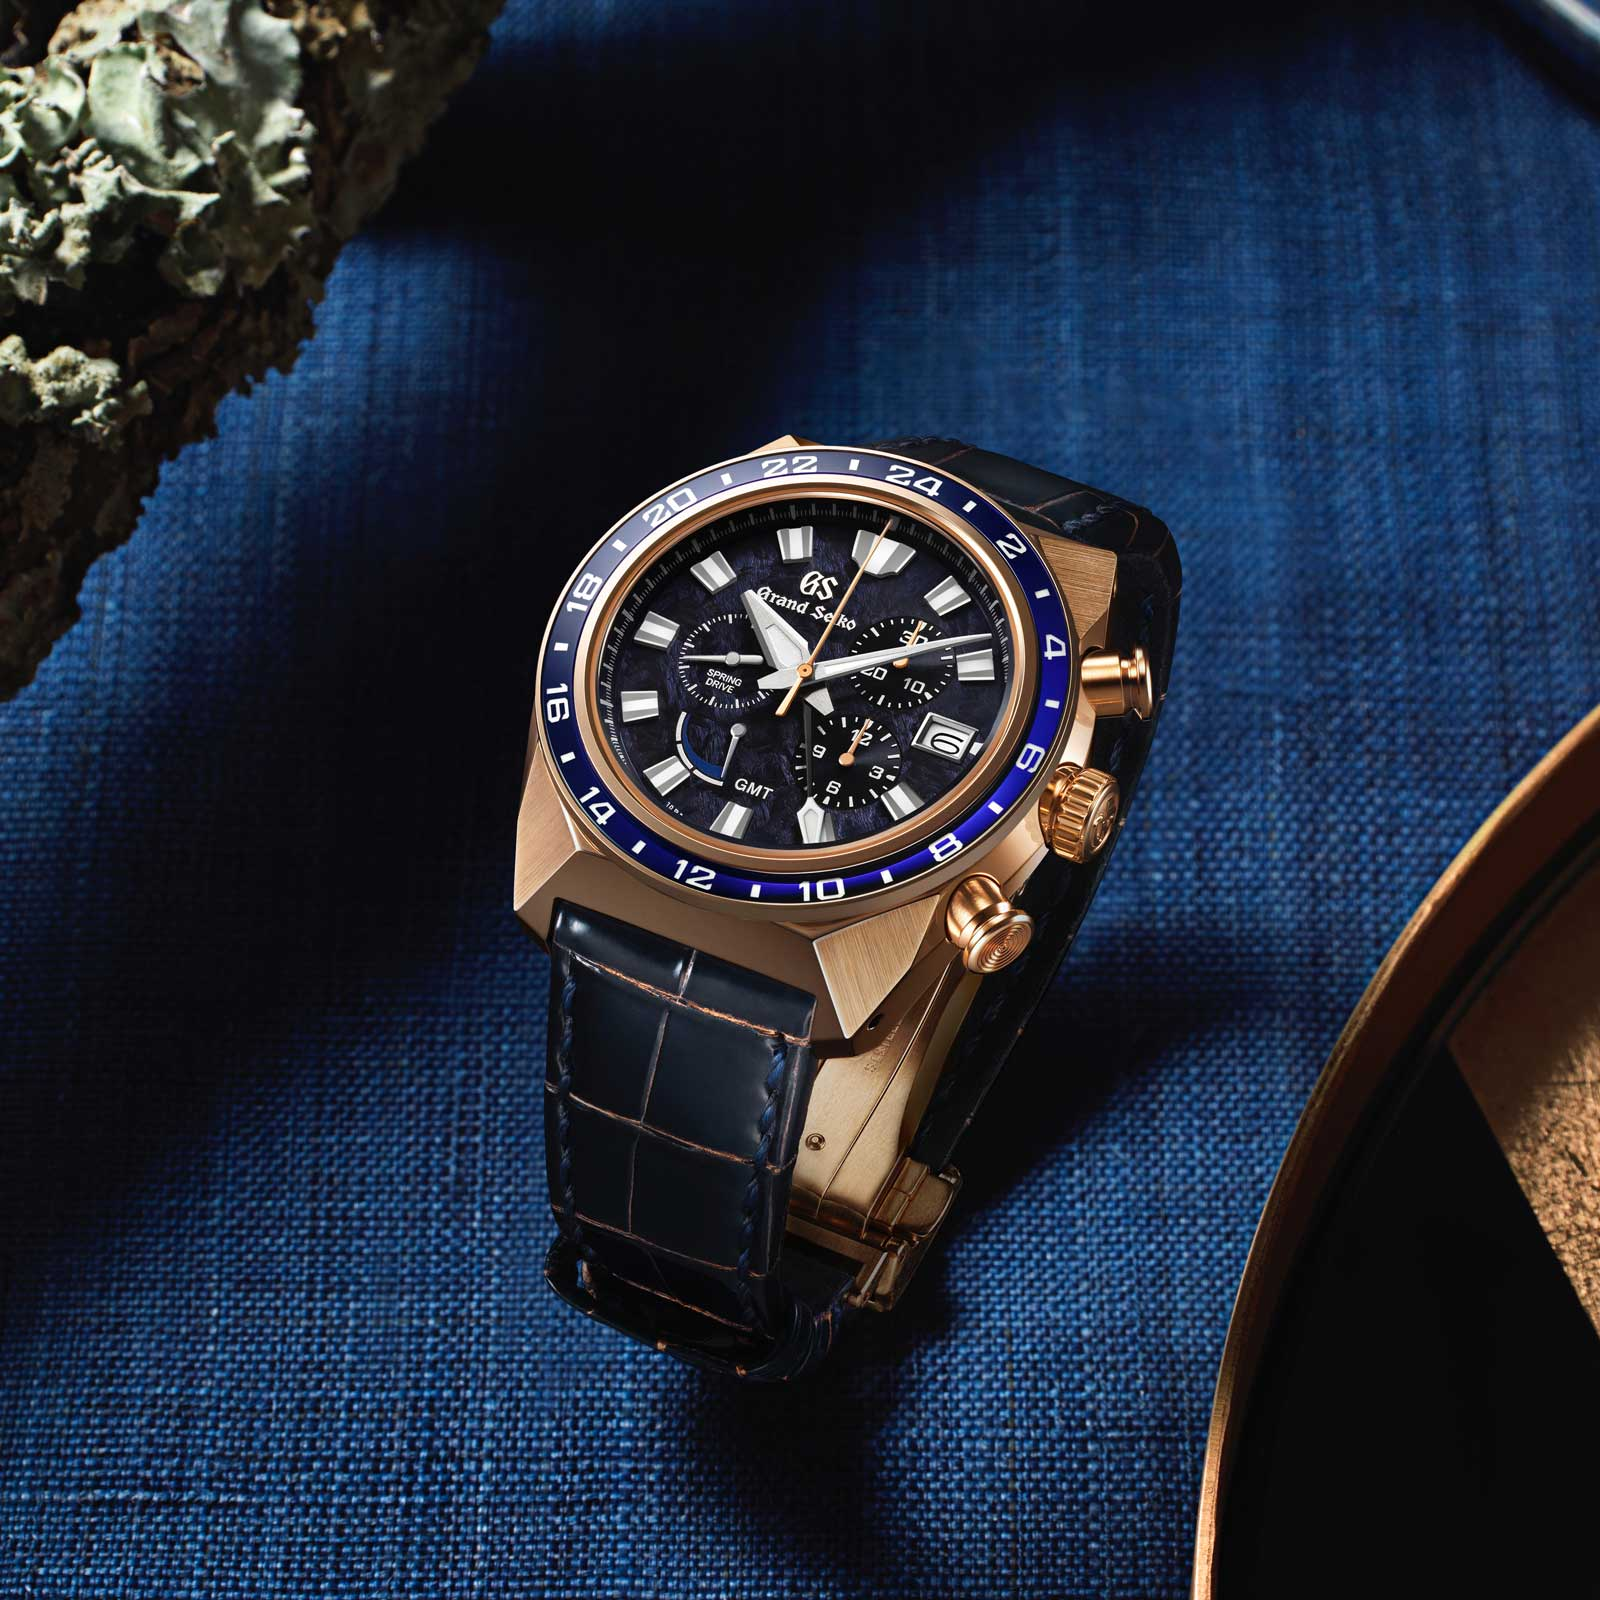 Grand Seiko SBGC238 - blue dial chronograph in gold case on blue tabletop.